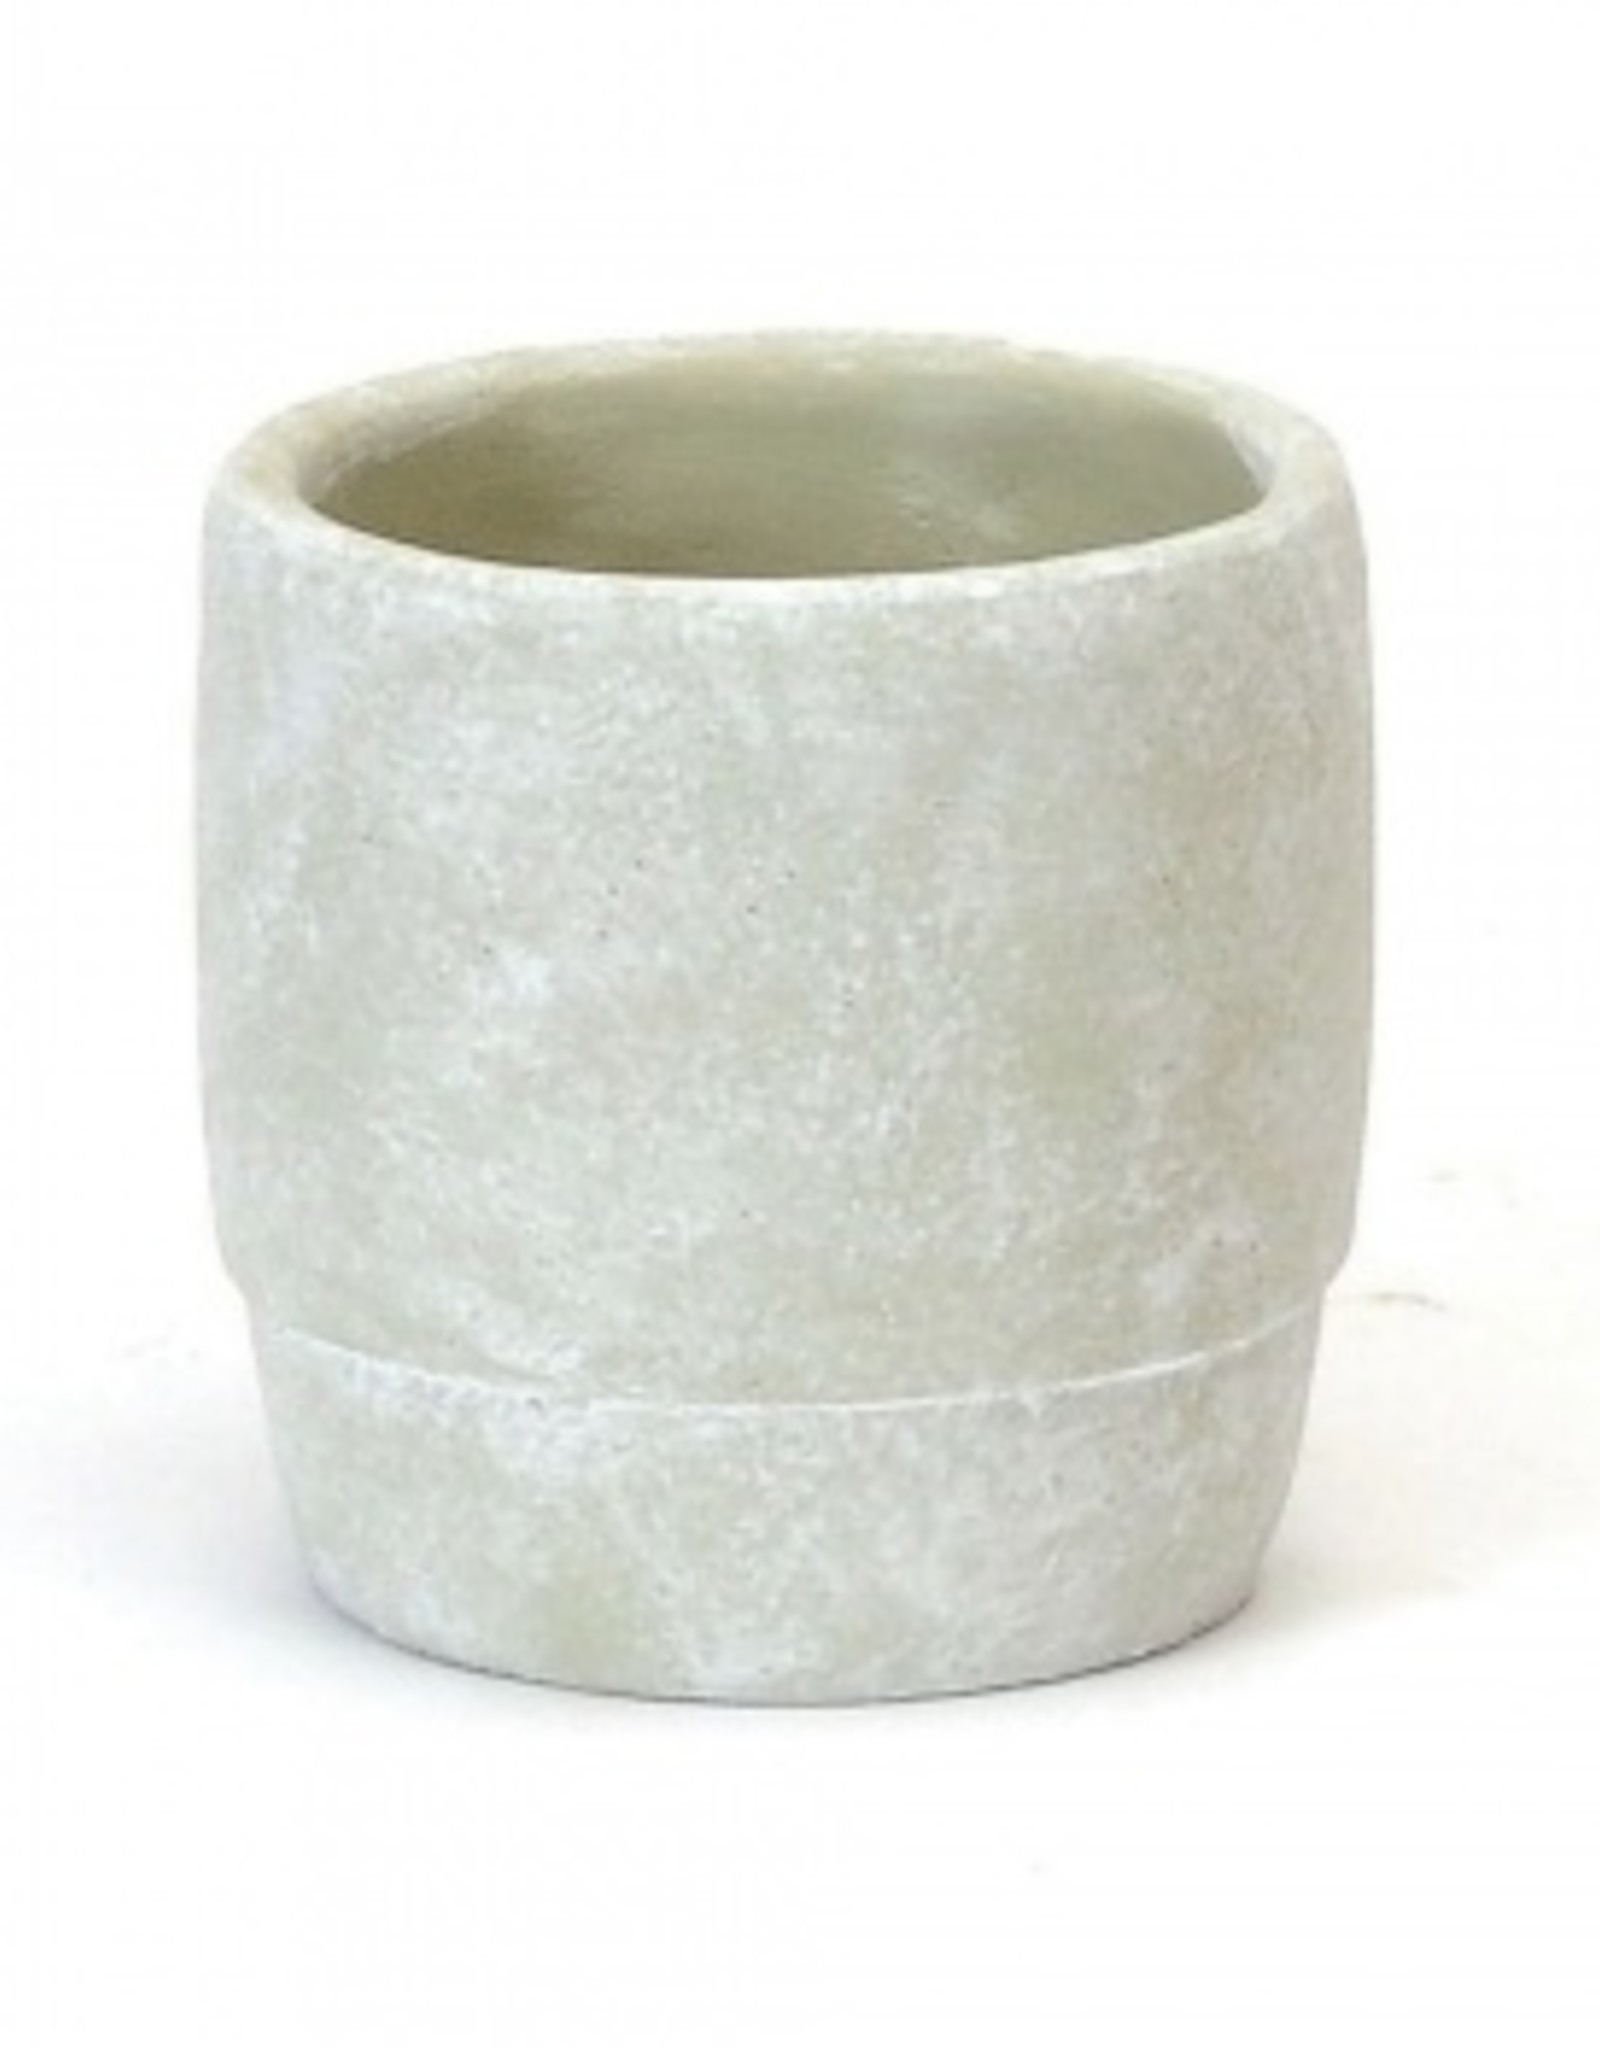 Round Concrete Planter with Cuff (small)